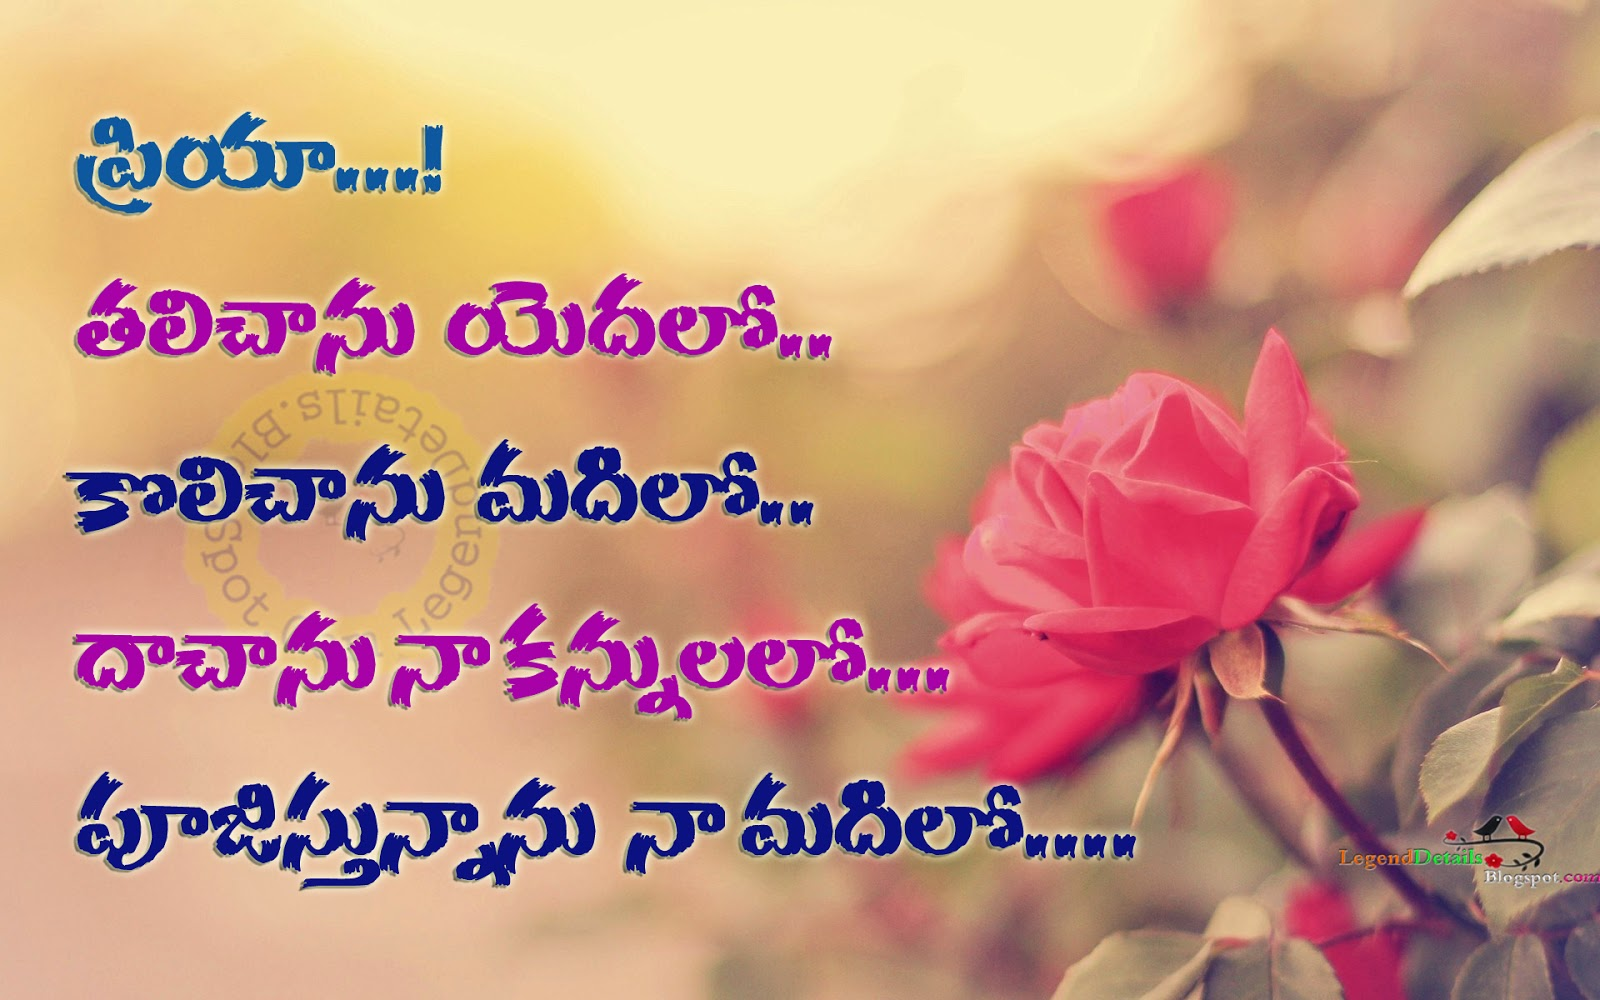 Telugu Quotes Wallpapers Telugu Kavithalu On Love Legendary Quotes